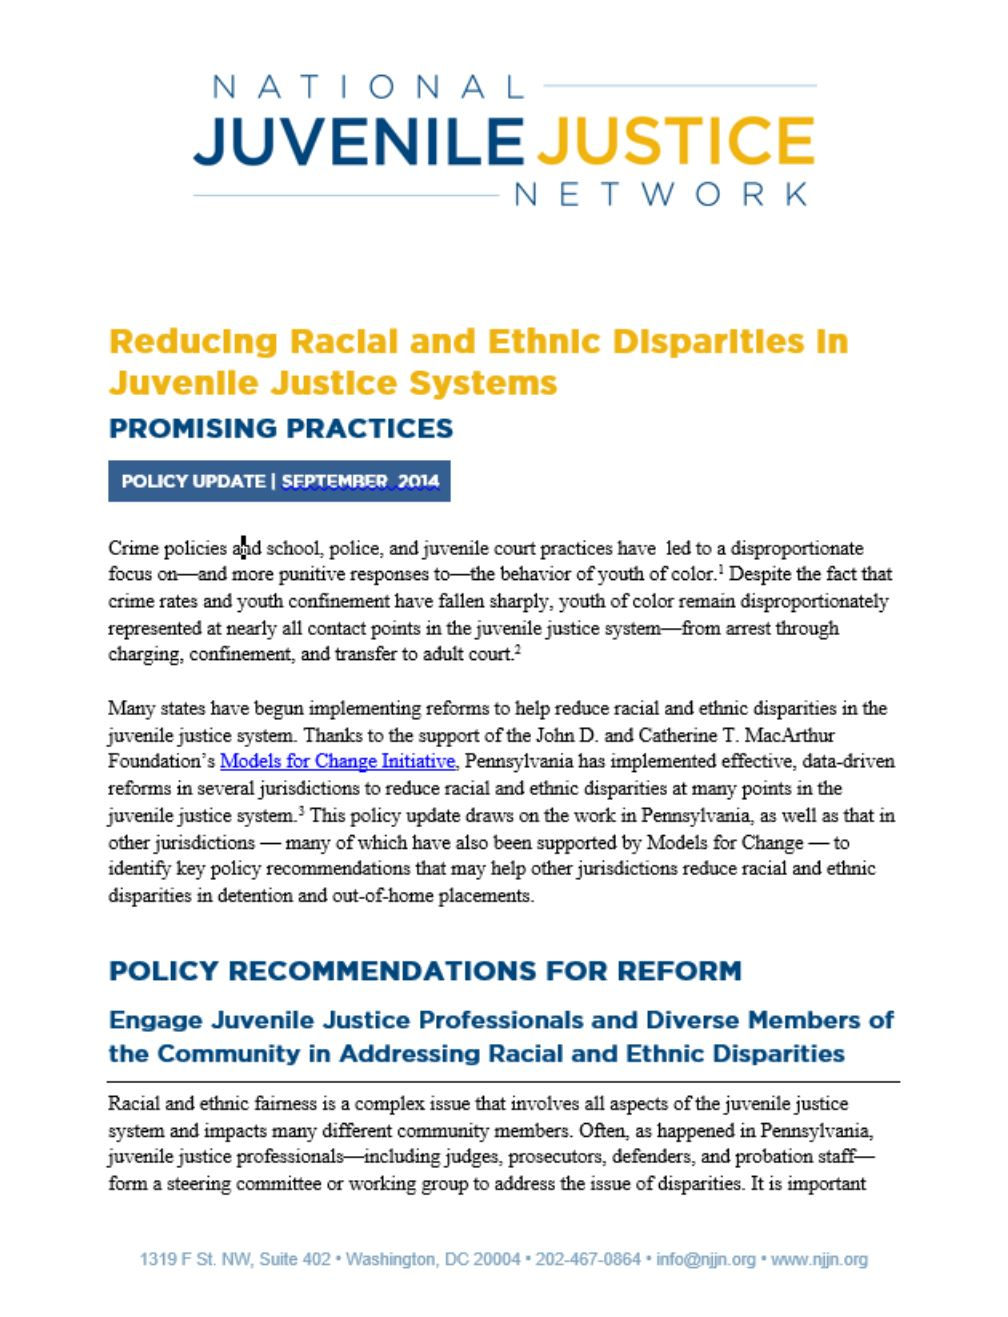 juvenile-justice-reform_racial-ethnic-disparities-doc-image